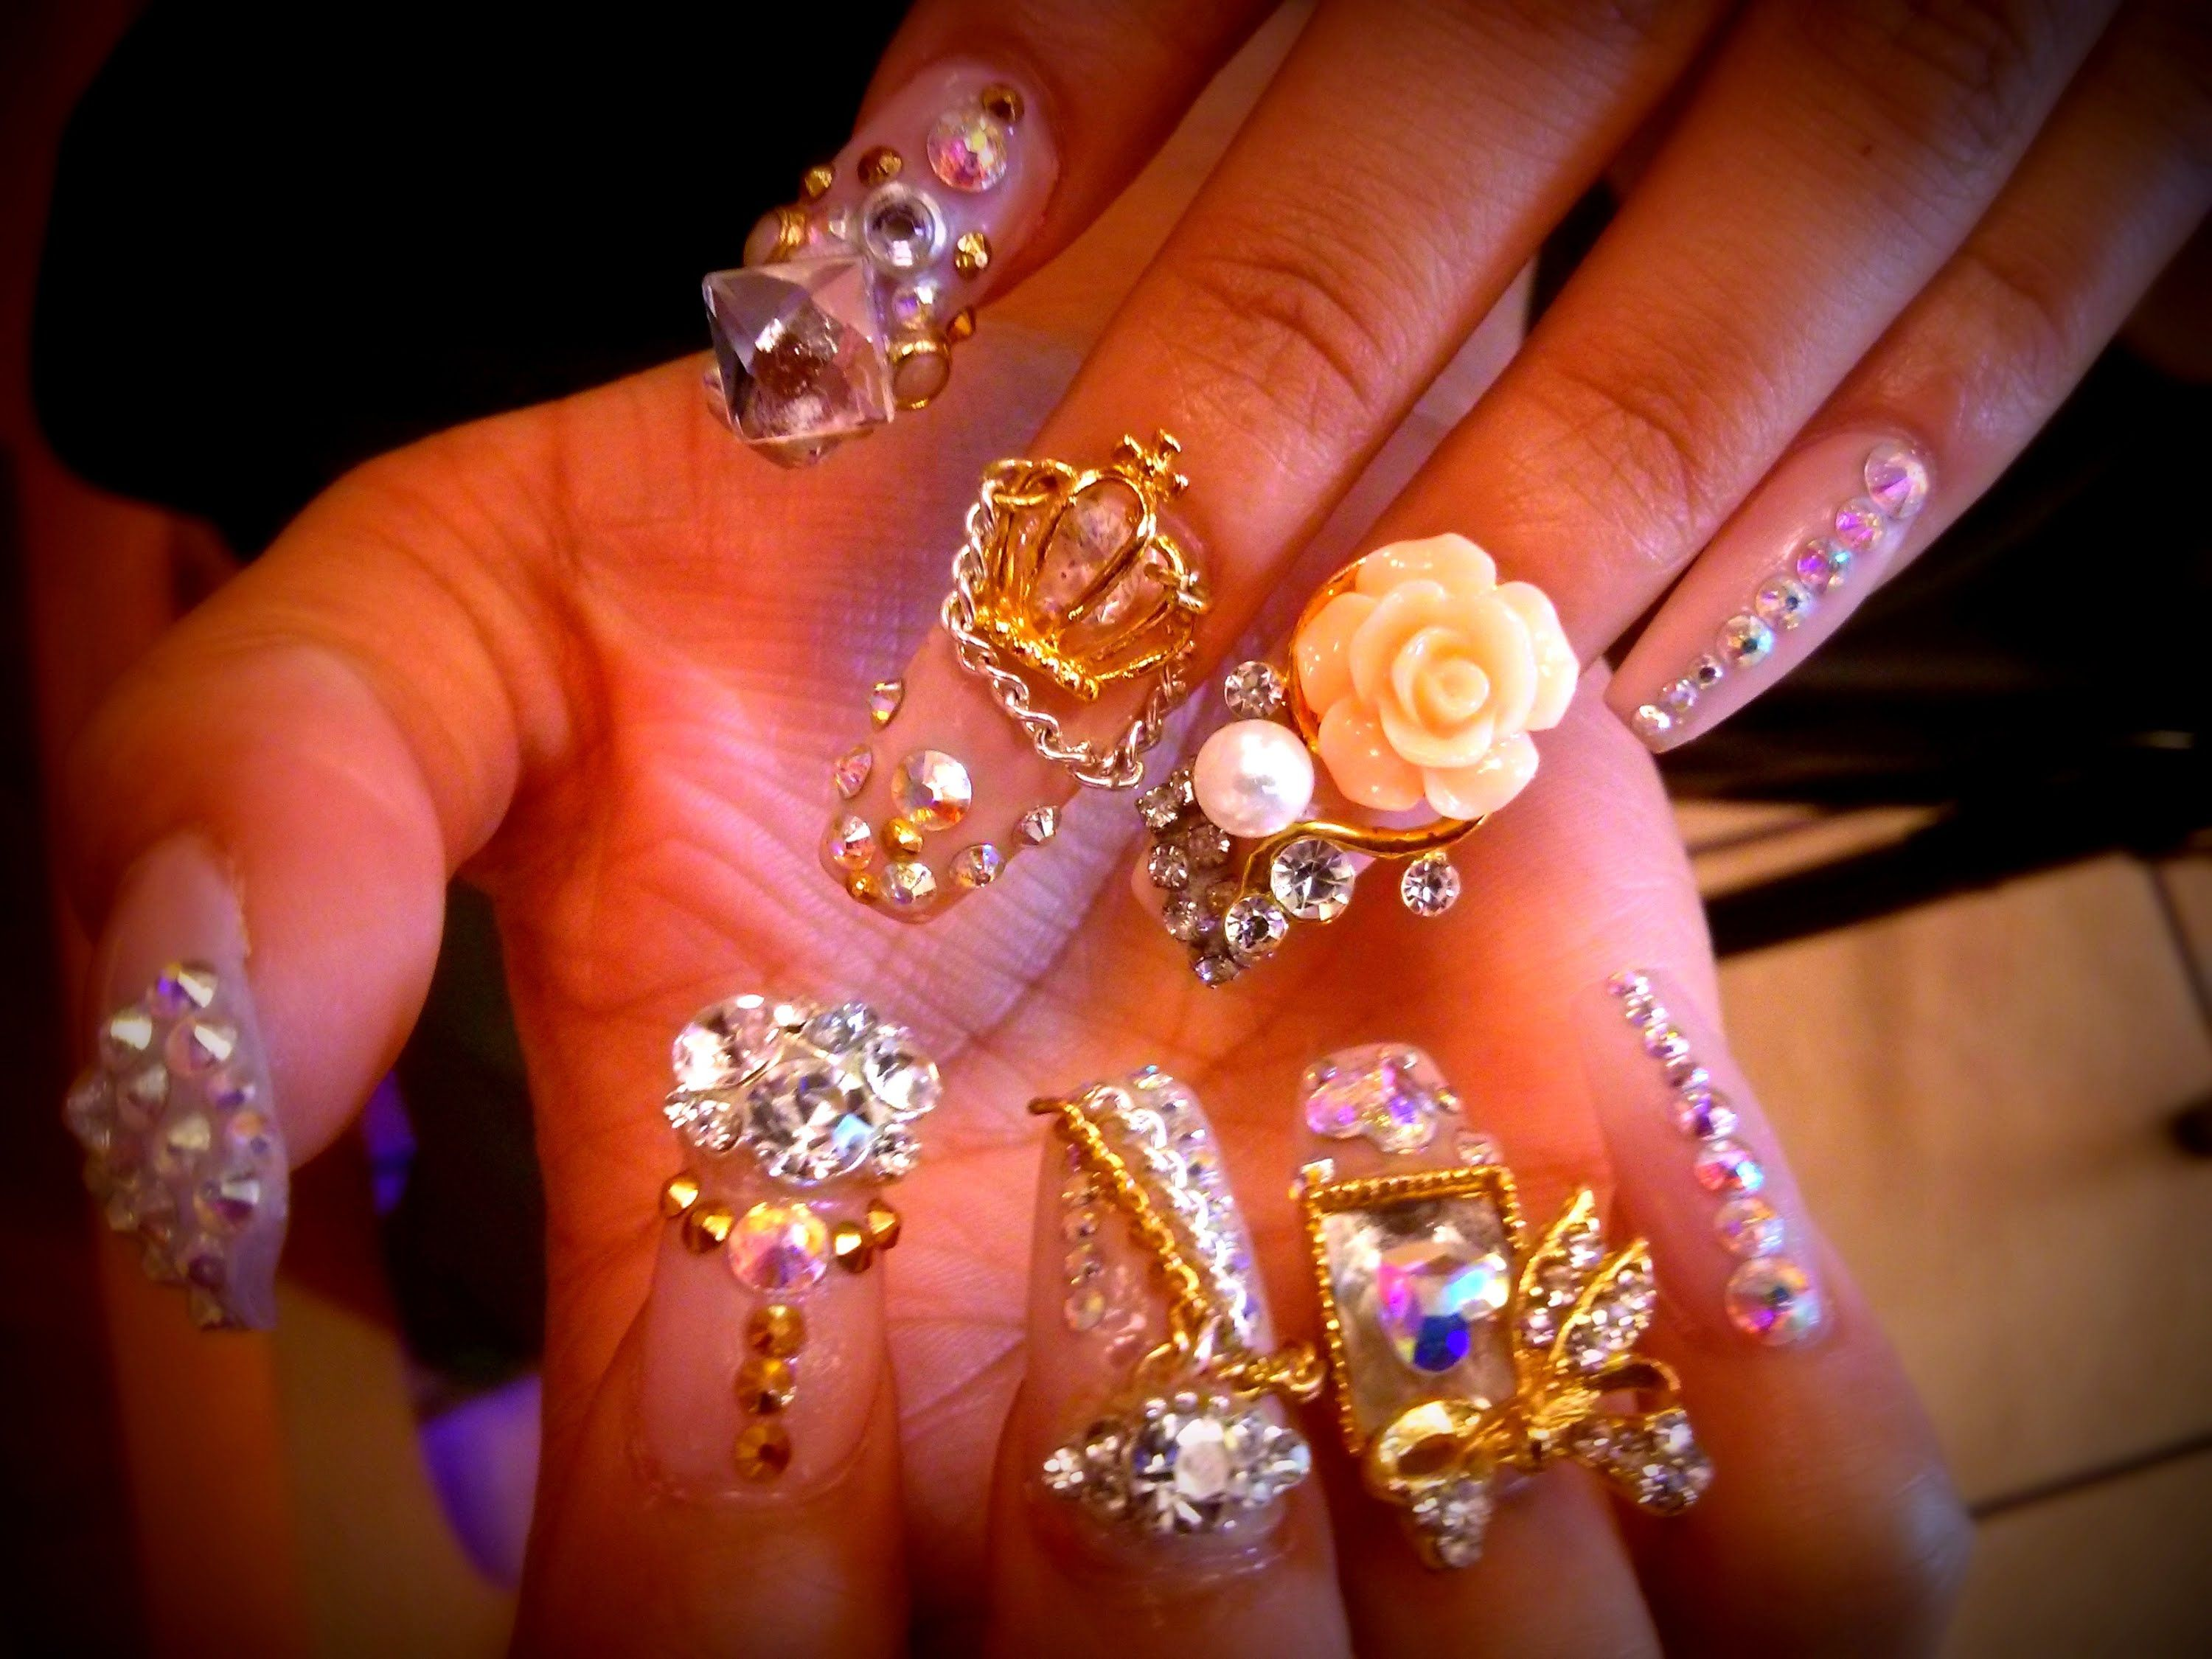 COFFIN NAILS 3D DESIGNS | Nails & Toes Designs to re-create DIY ...